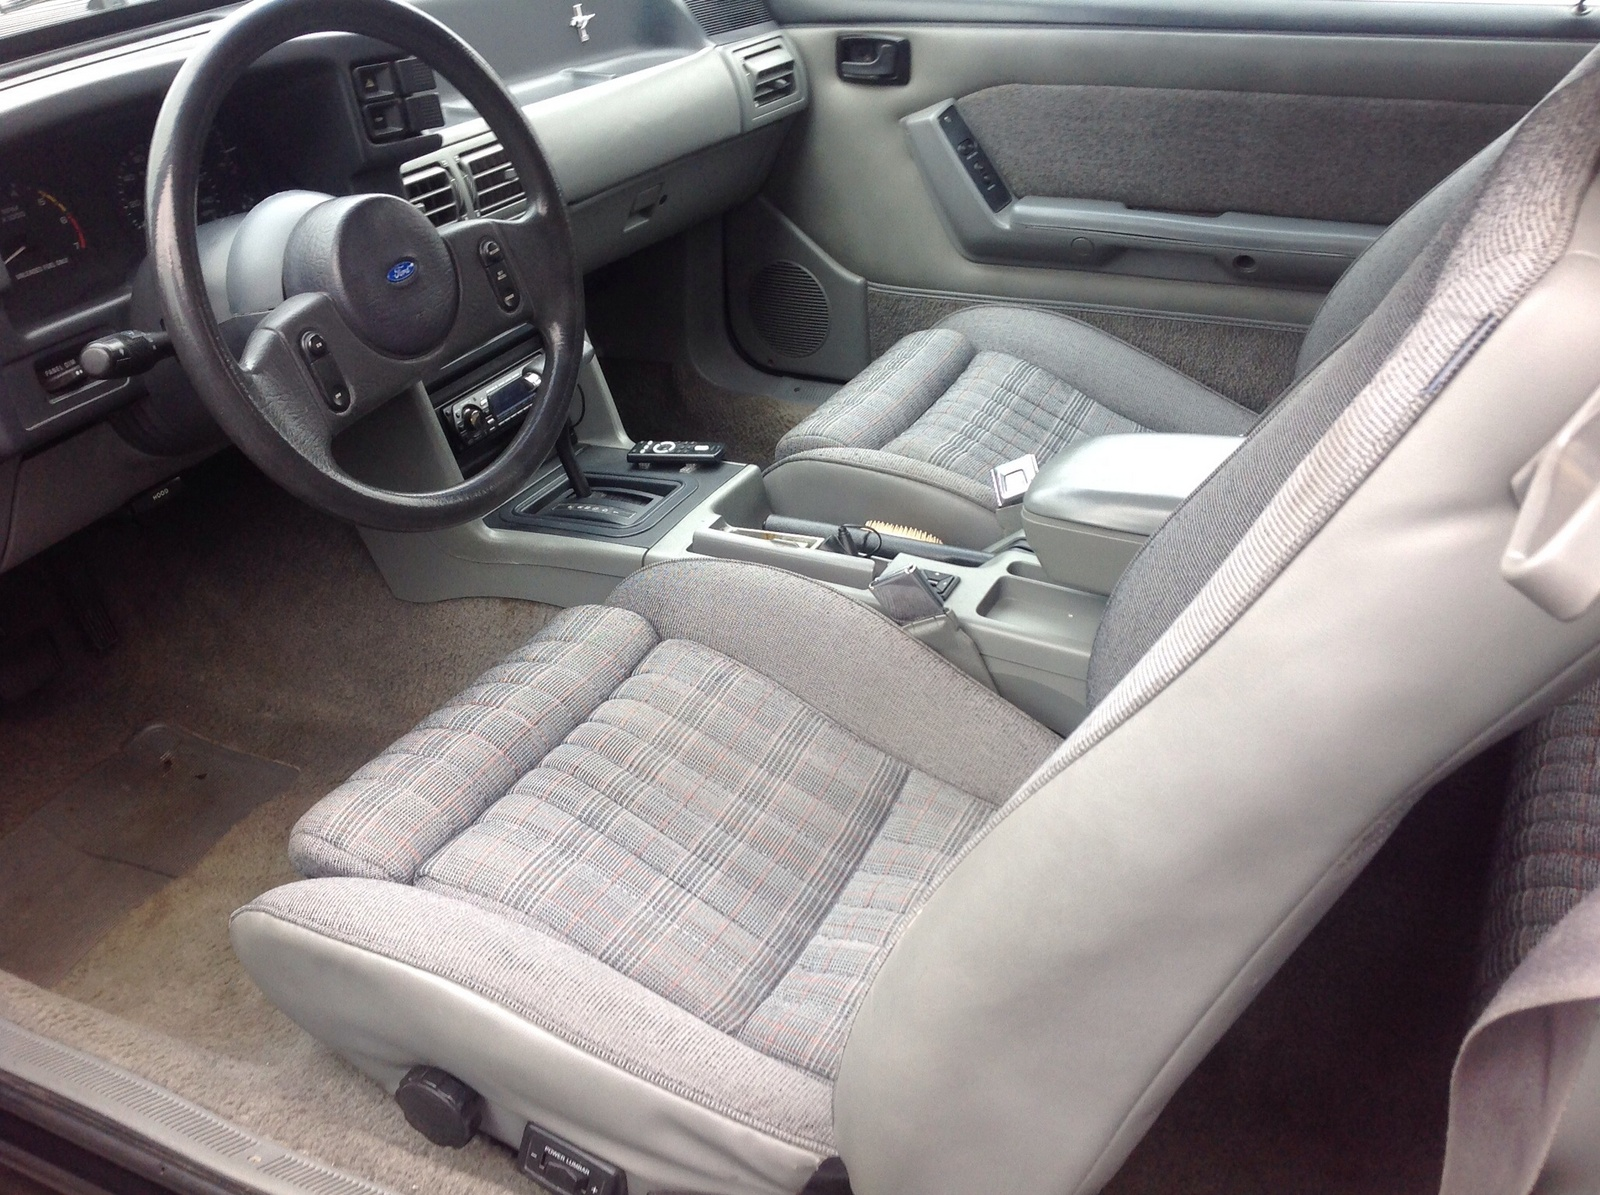 1989 Mustang Coupe Interior